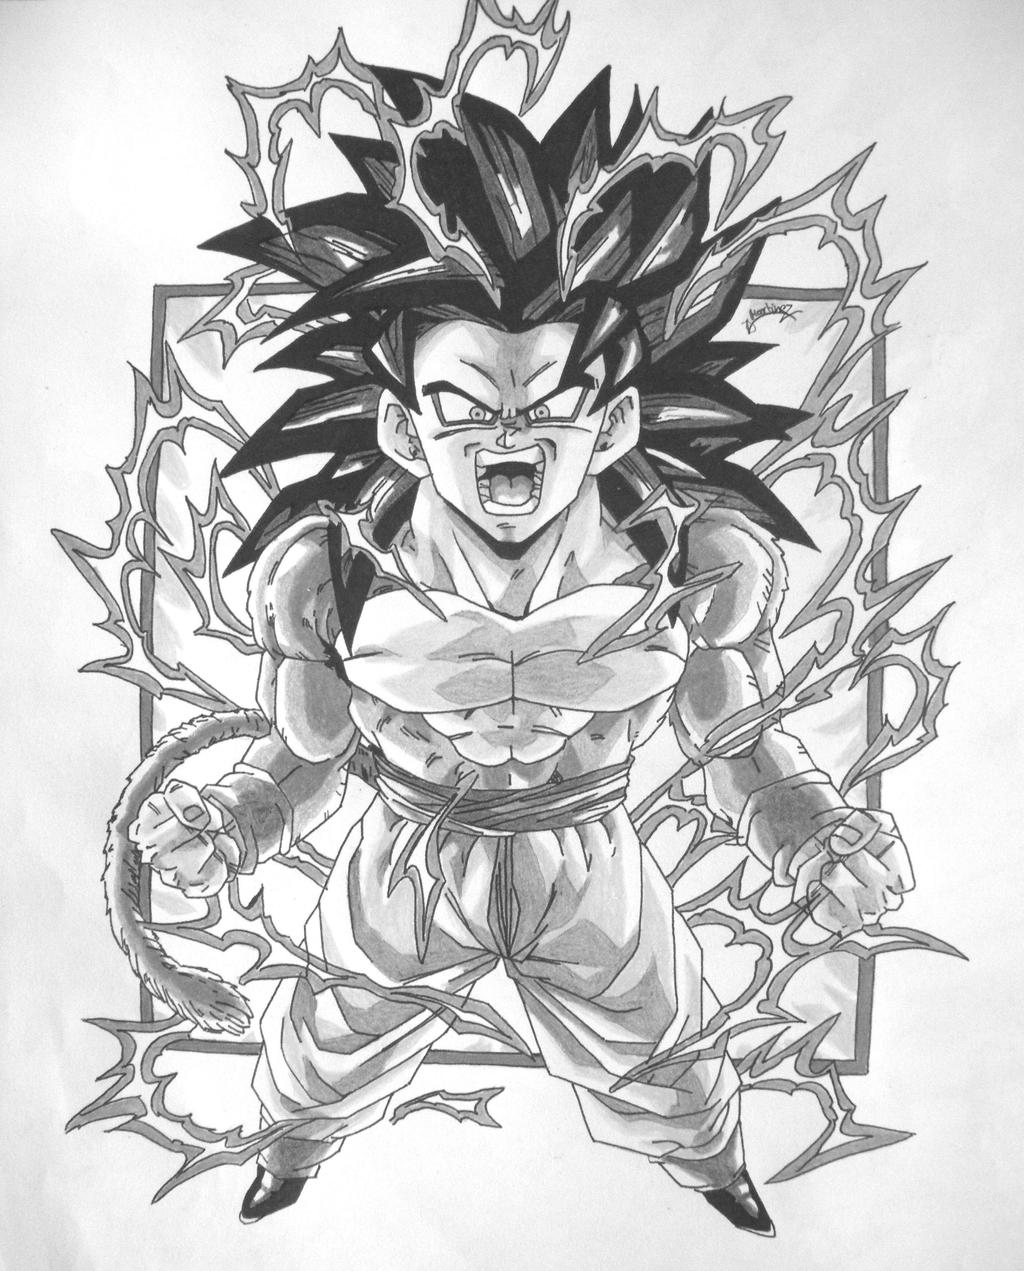 Image 7 Of 50 Dragonball Gt Black And White Goku Ss4 V1 By